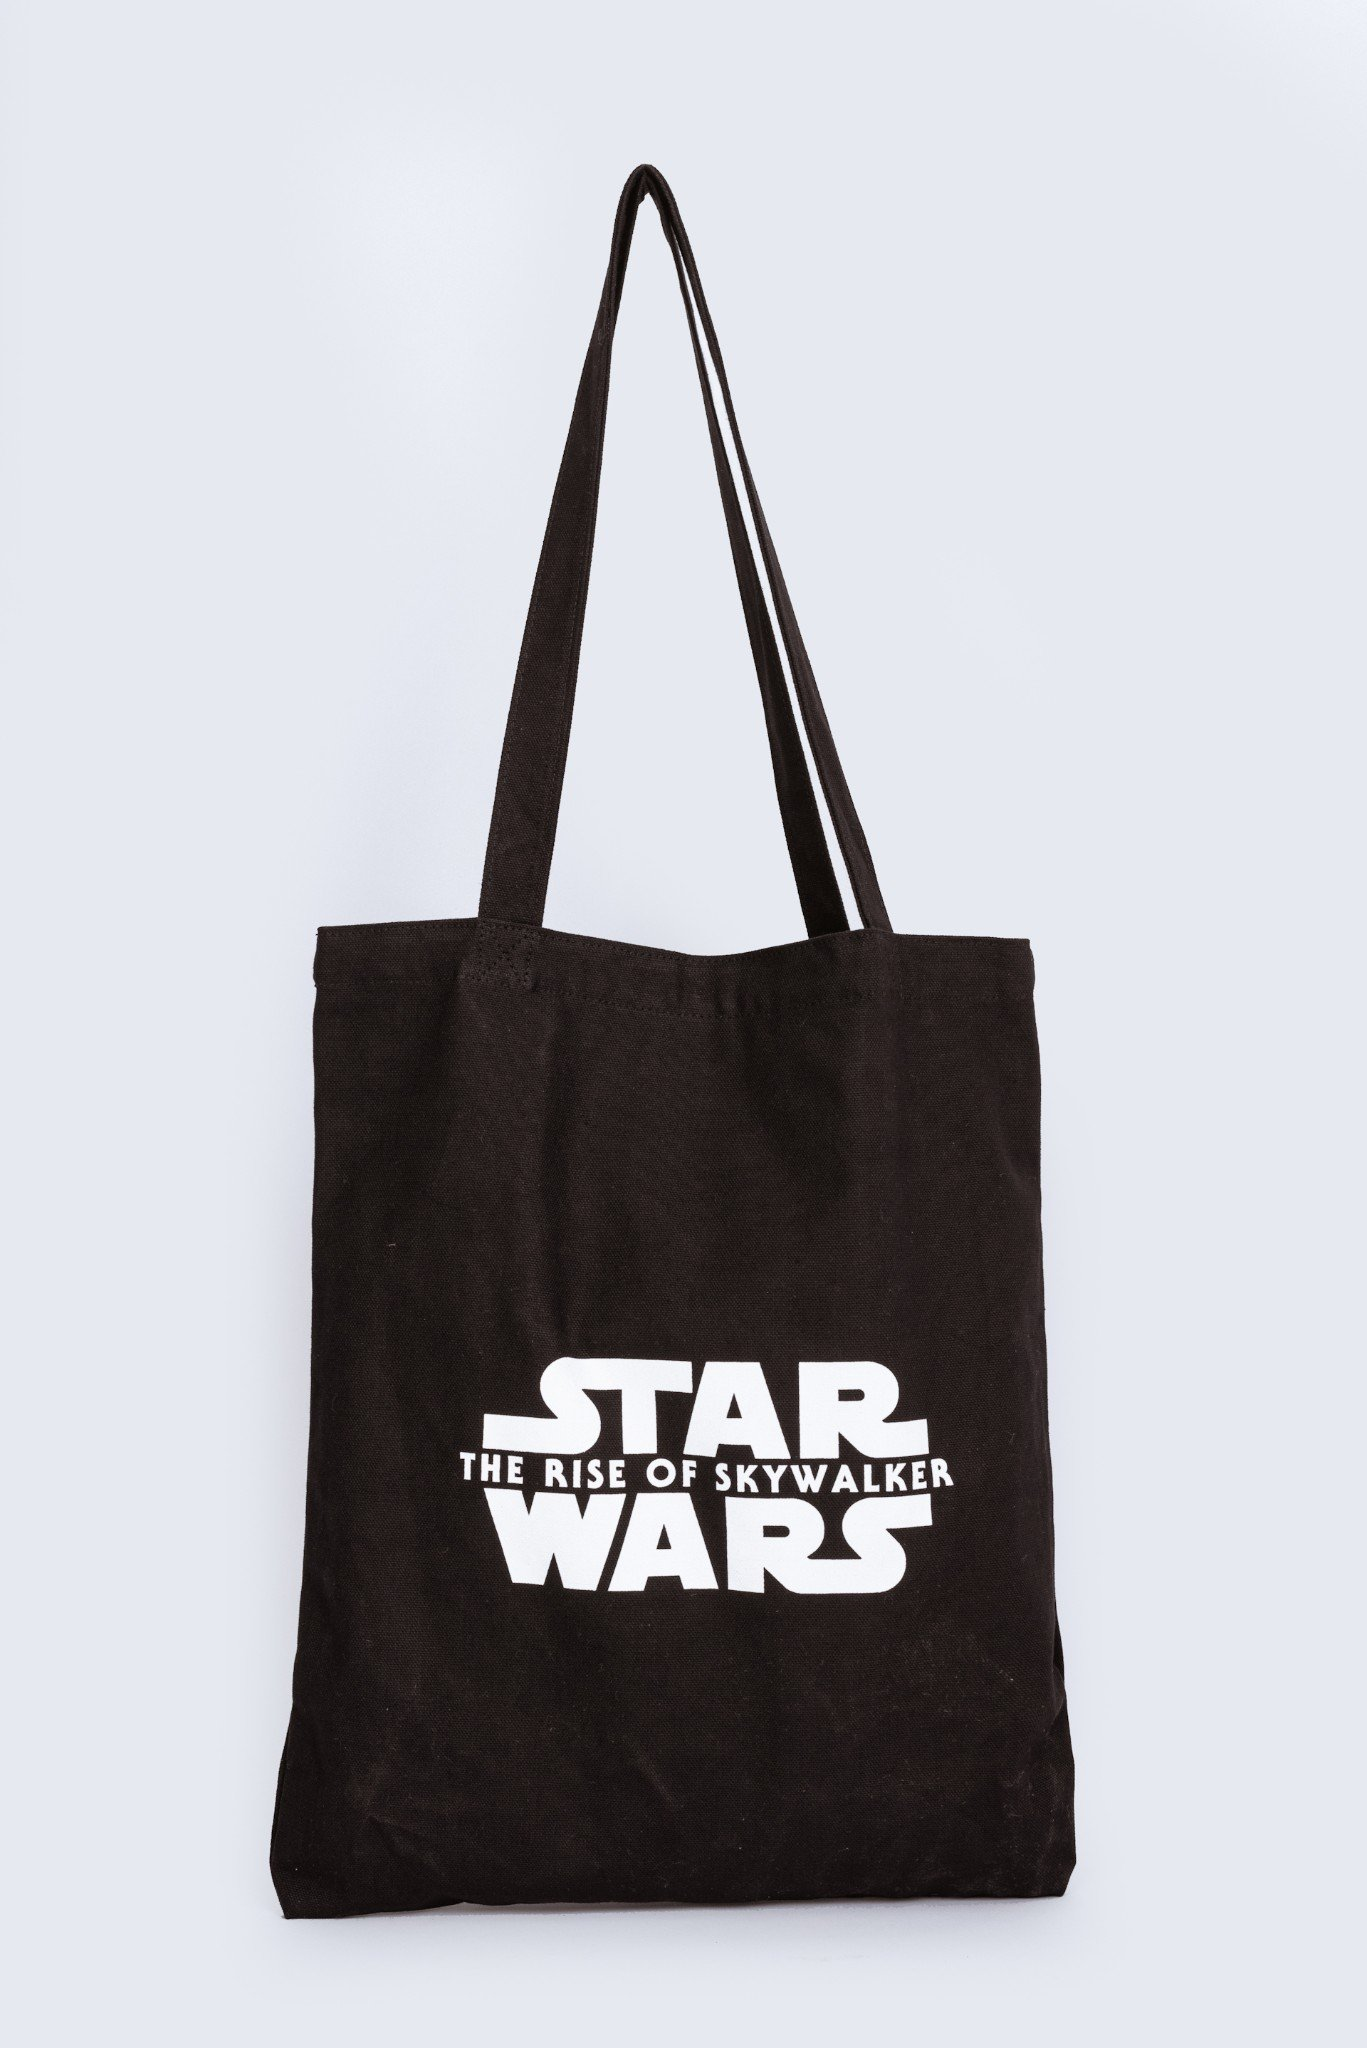 TÚI TOTE IN STARWARS